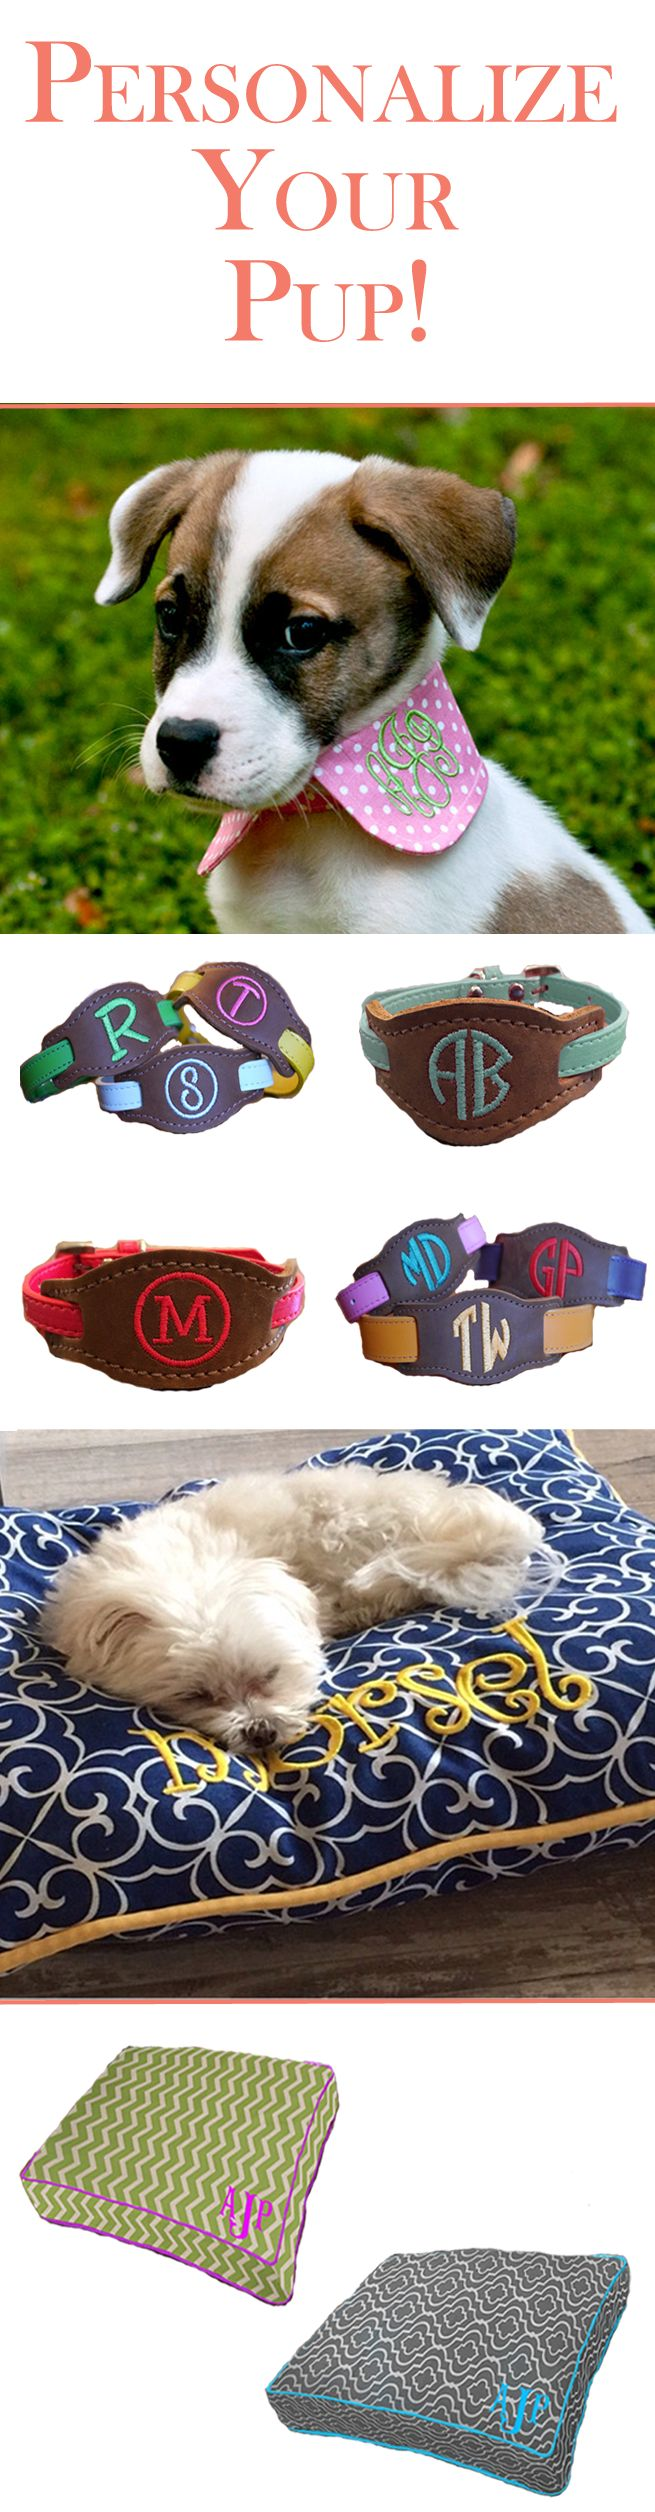 Bring a personal touch to your dog's accessories with our curated collection of monogrammed dog fashion! Browse designer dog beds, crate covers and collars are with an extra special monogram design!